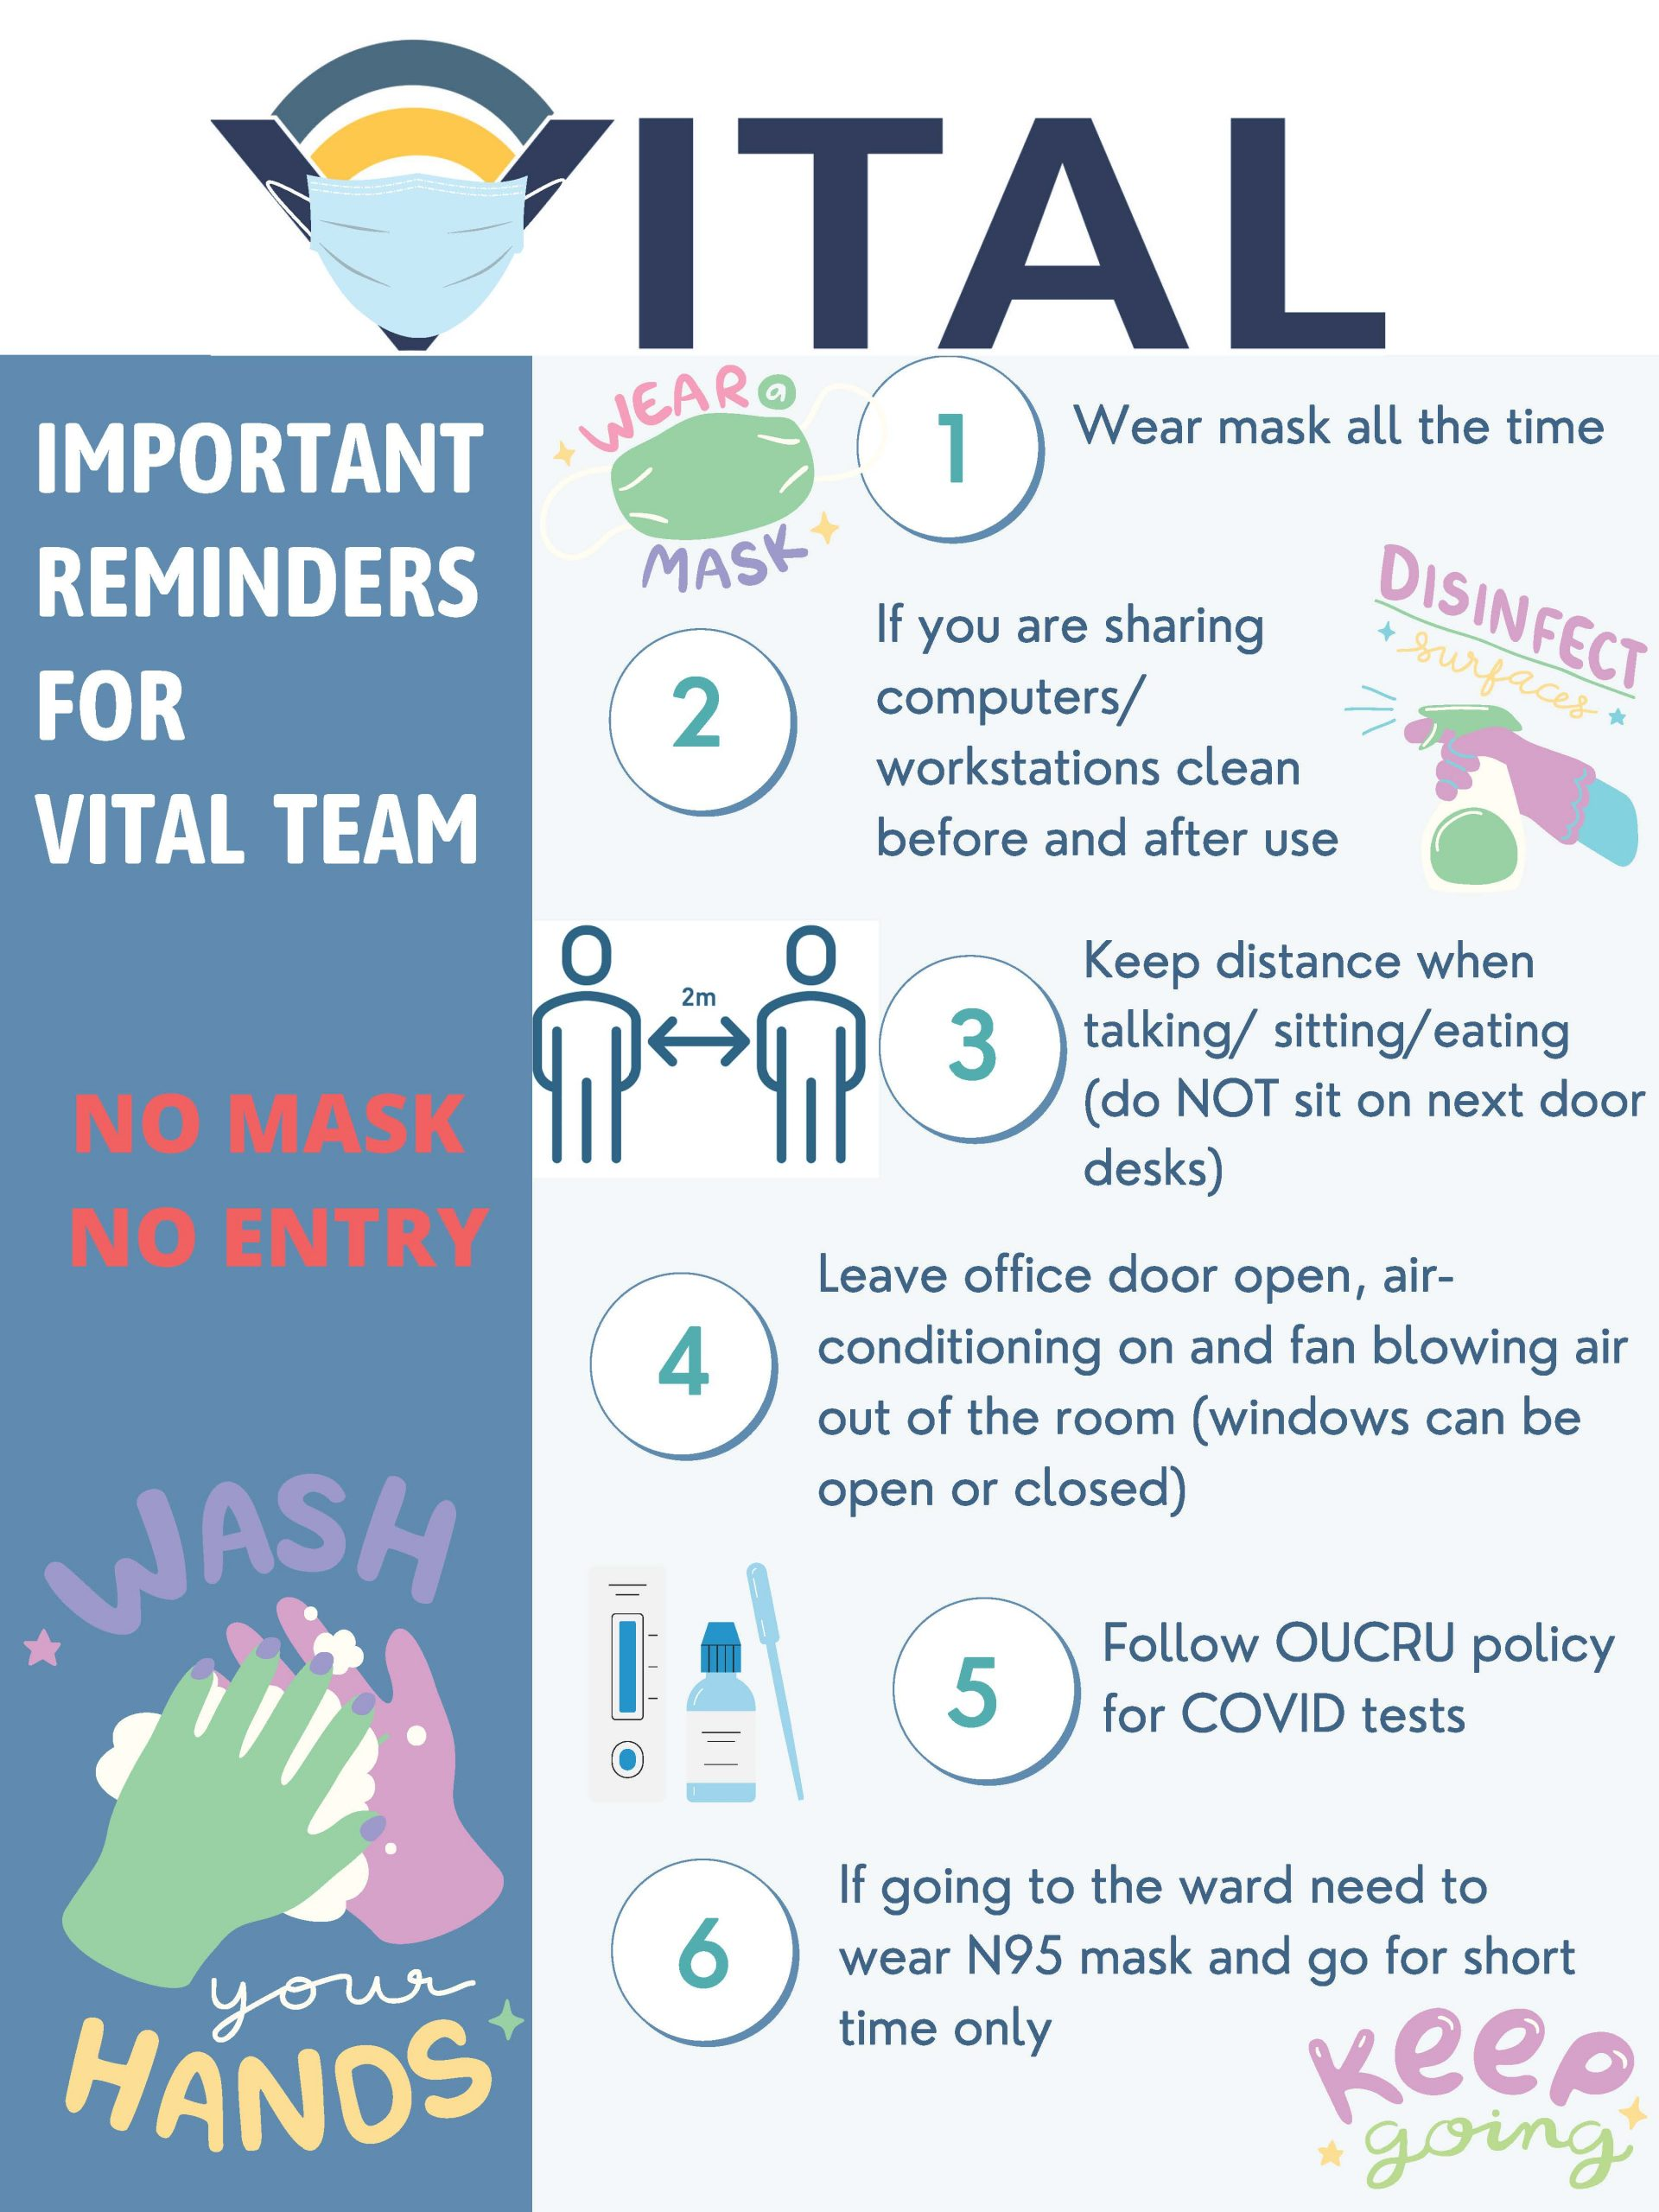 Important reminders for VITAL team